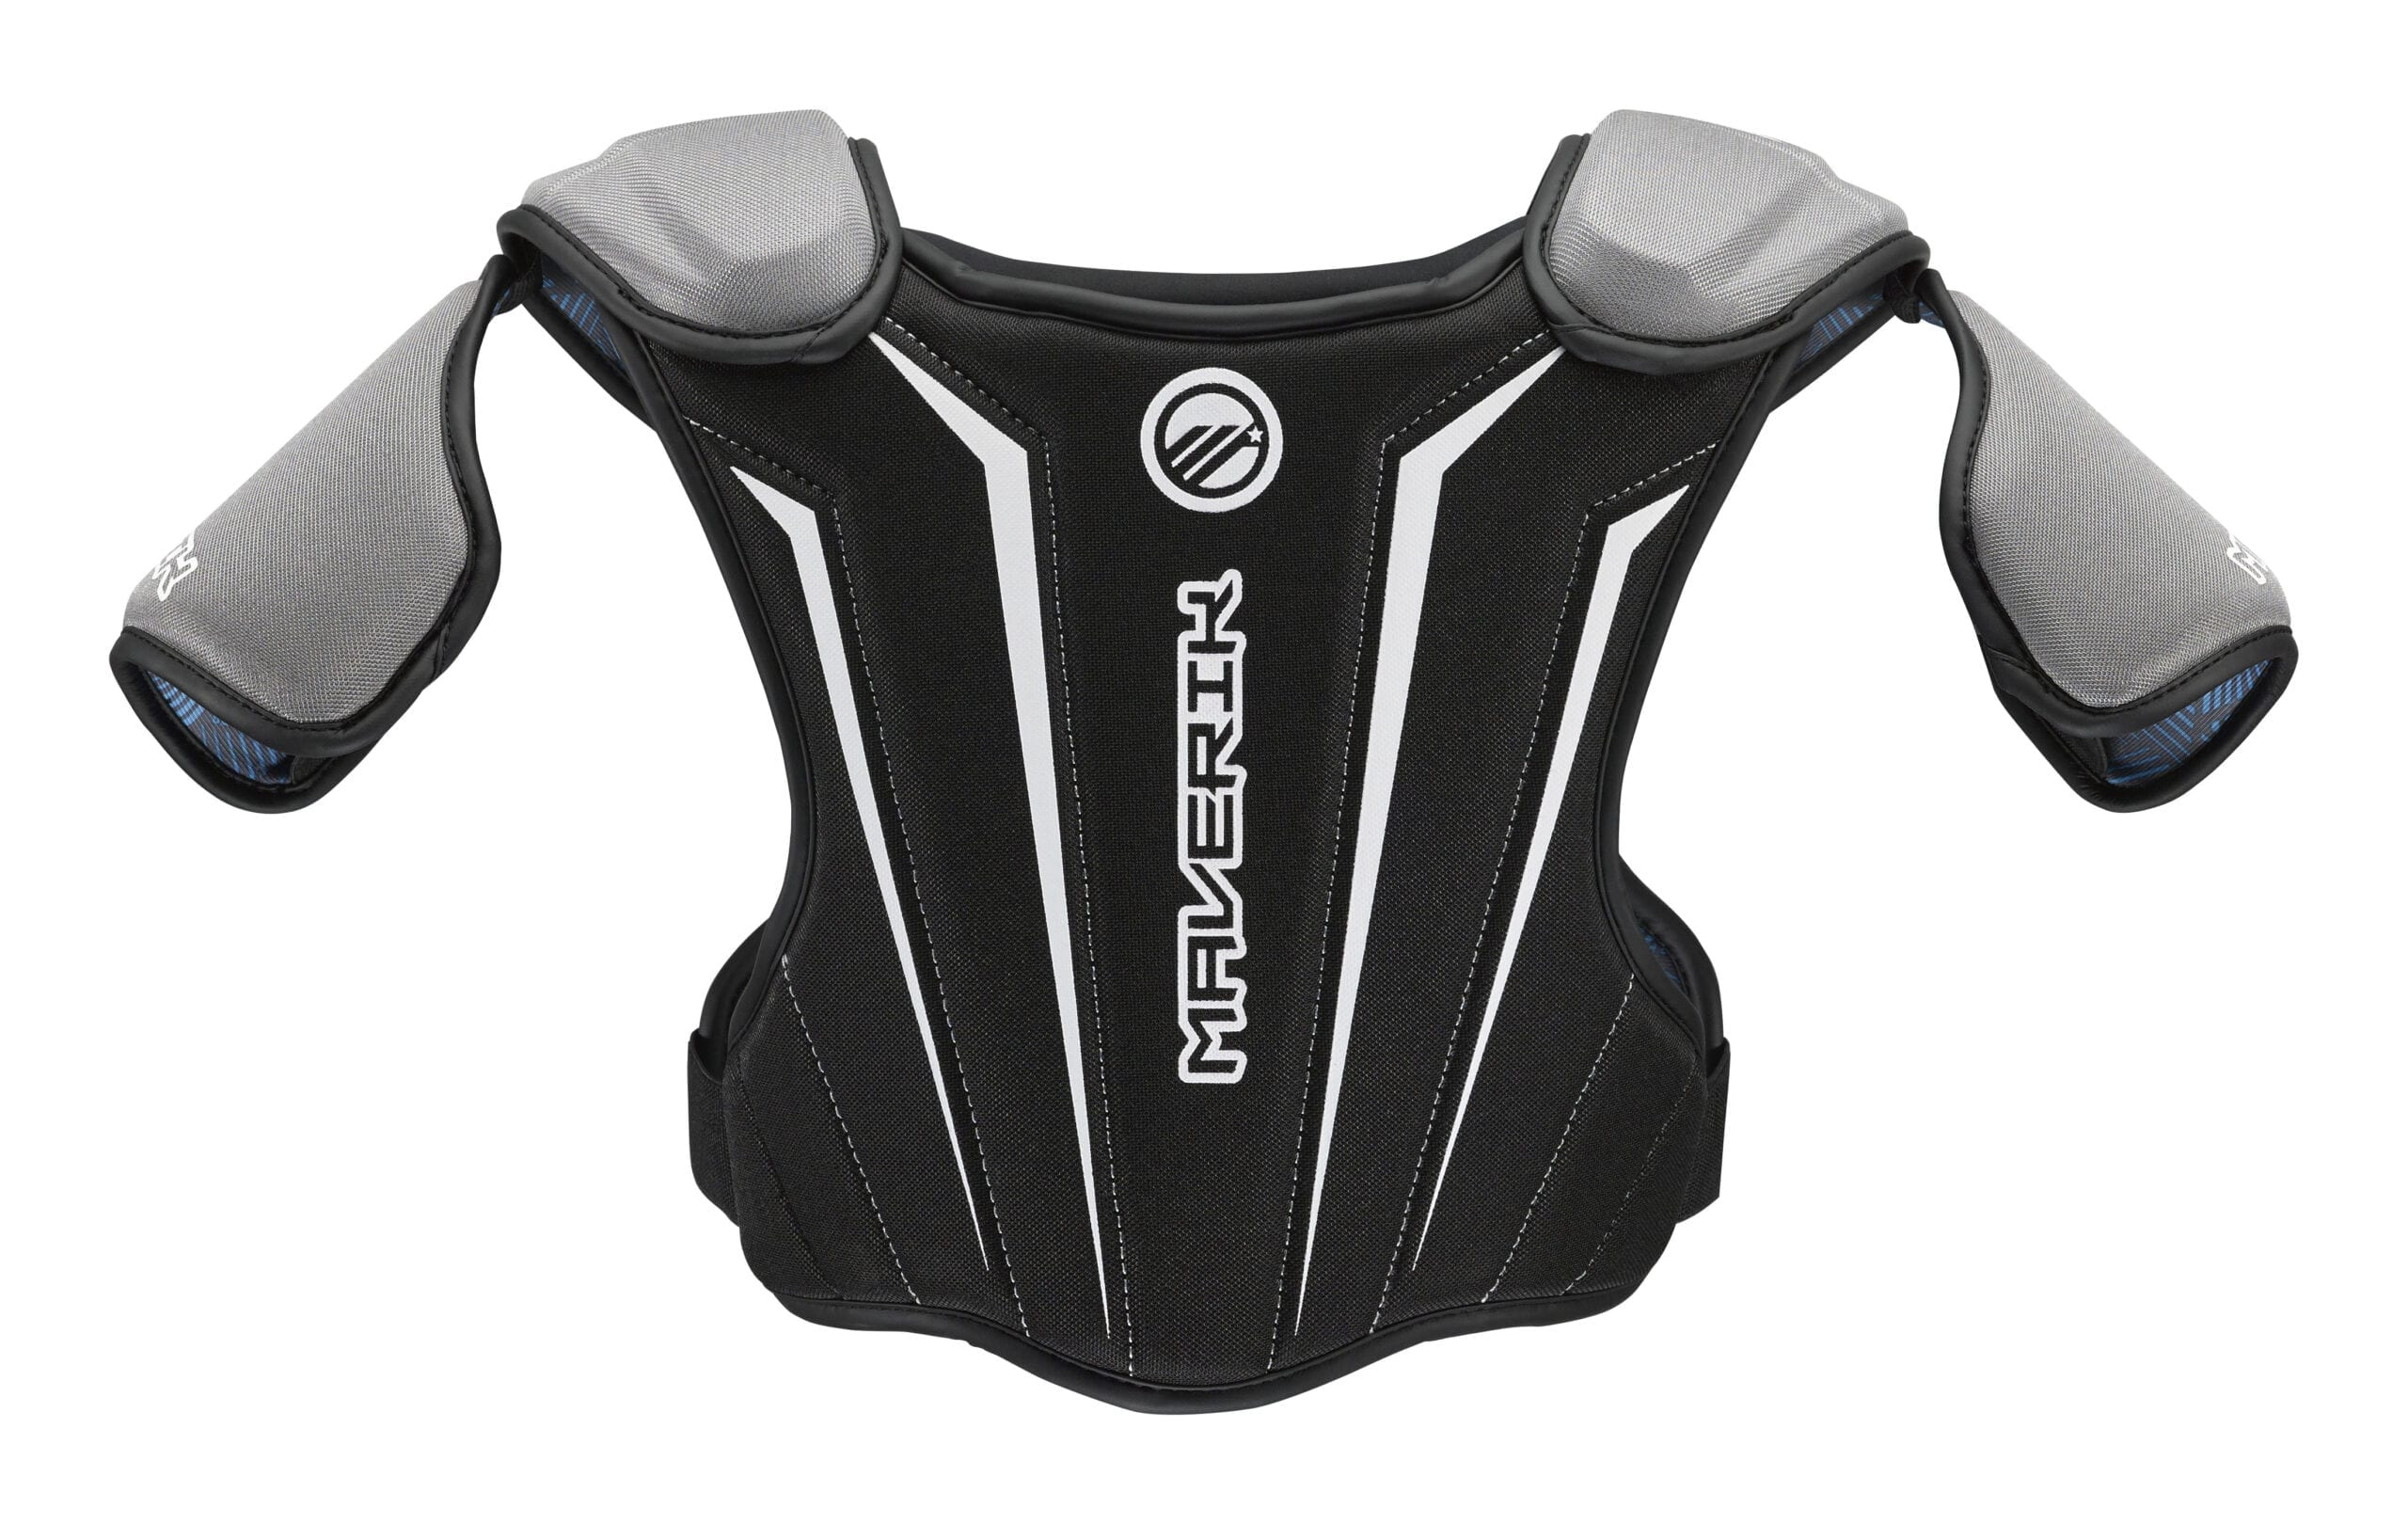 CHARGER-SHOULDER-PAD_PROTECTIVE__BLACK_BACK-scaled-1.jpg